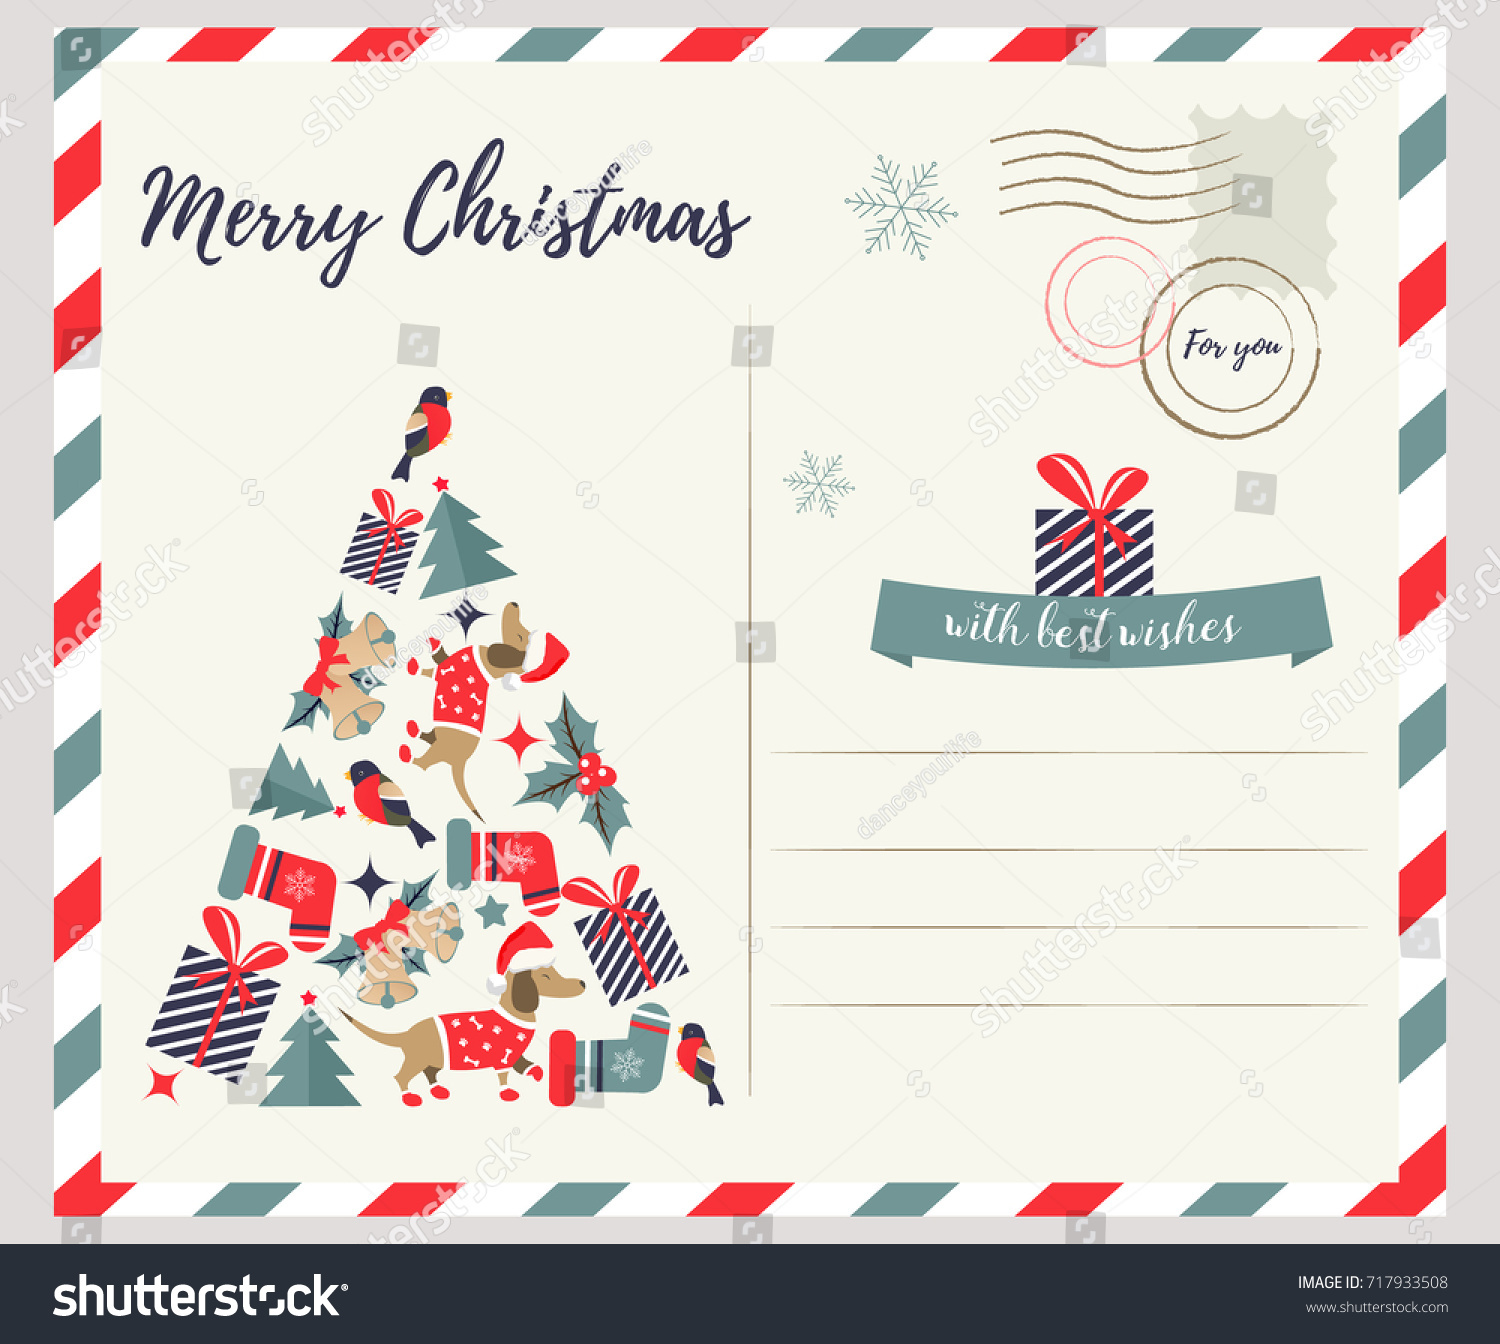 Holiday Greeting Card Christmas Eve Stock Vector (Royalty Free ...